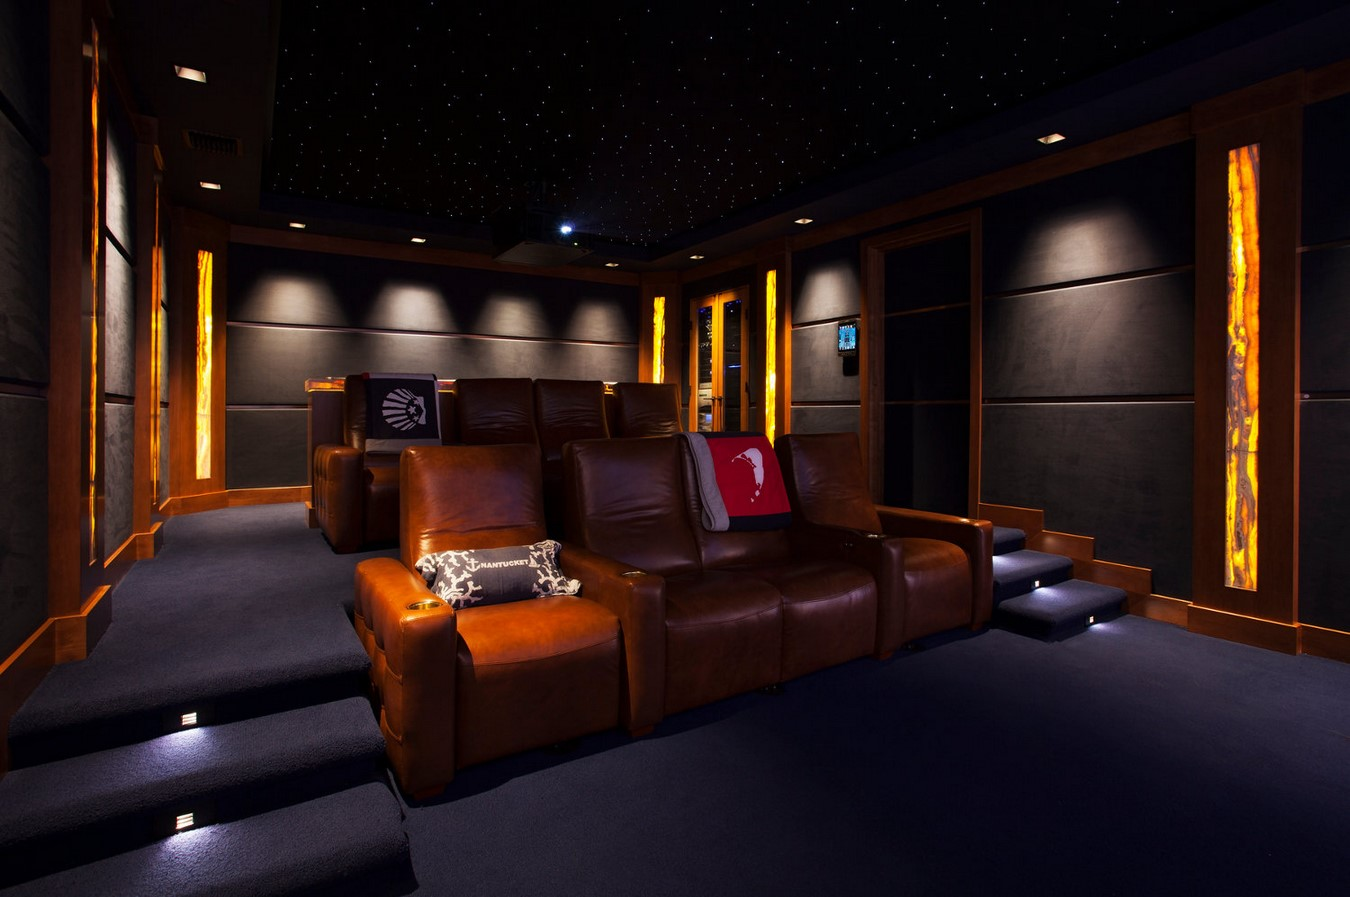 10 Tips to follow while designing for Home Theater - Sheet2